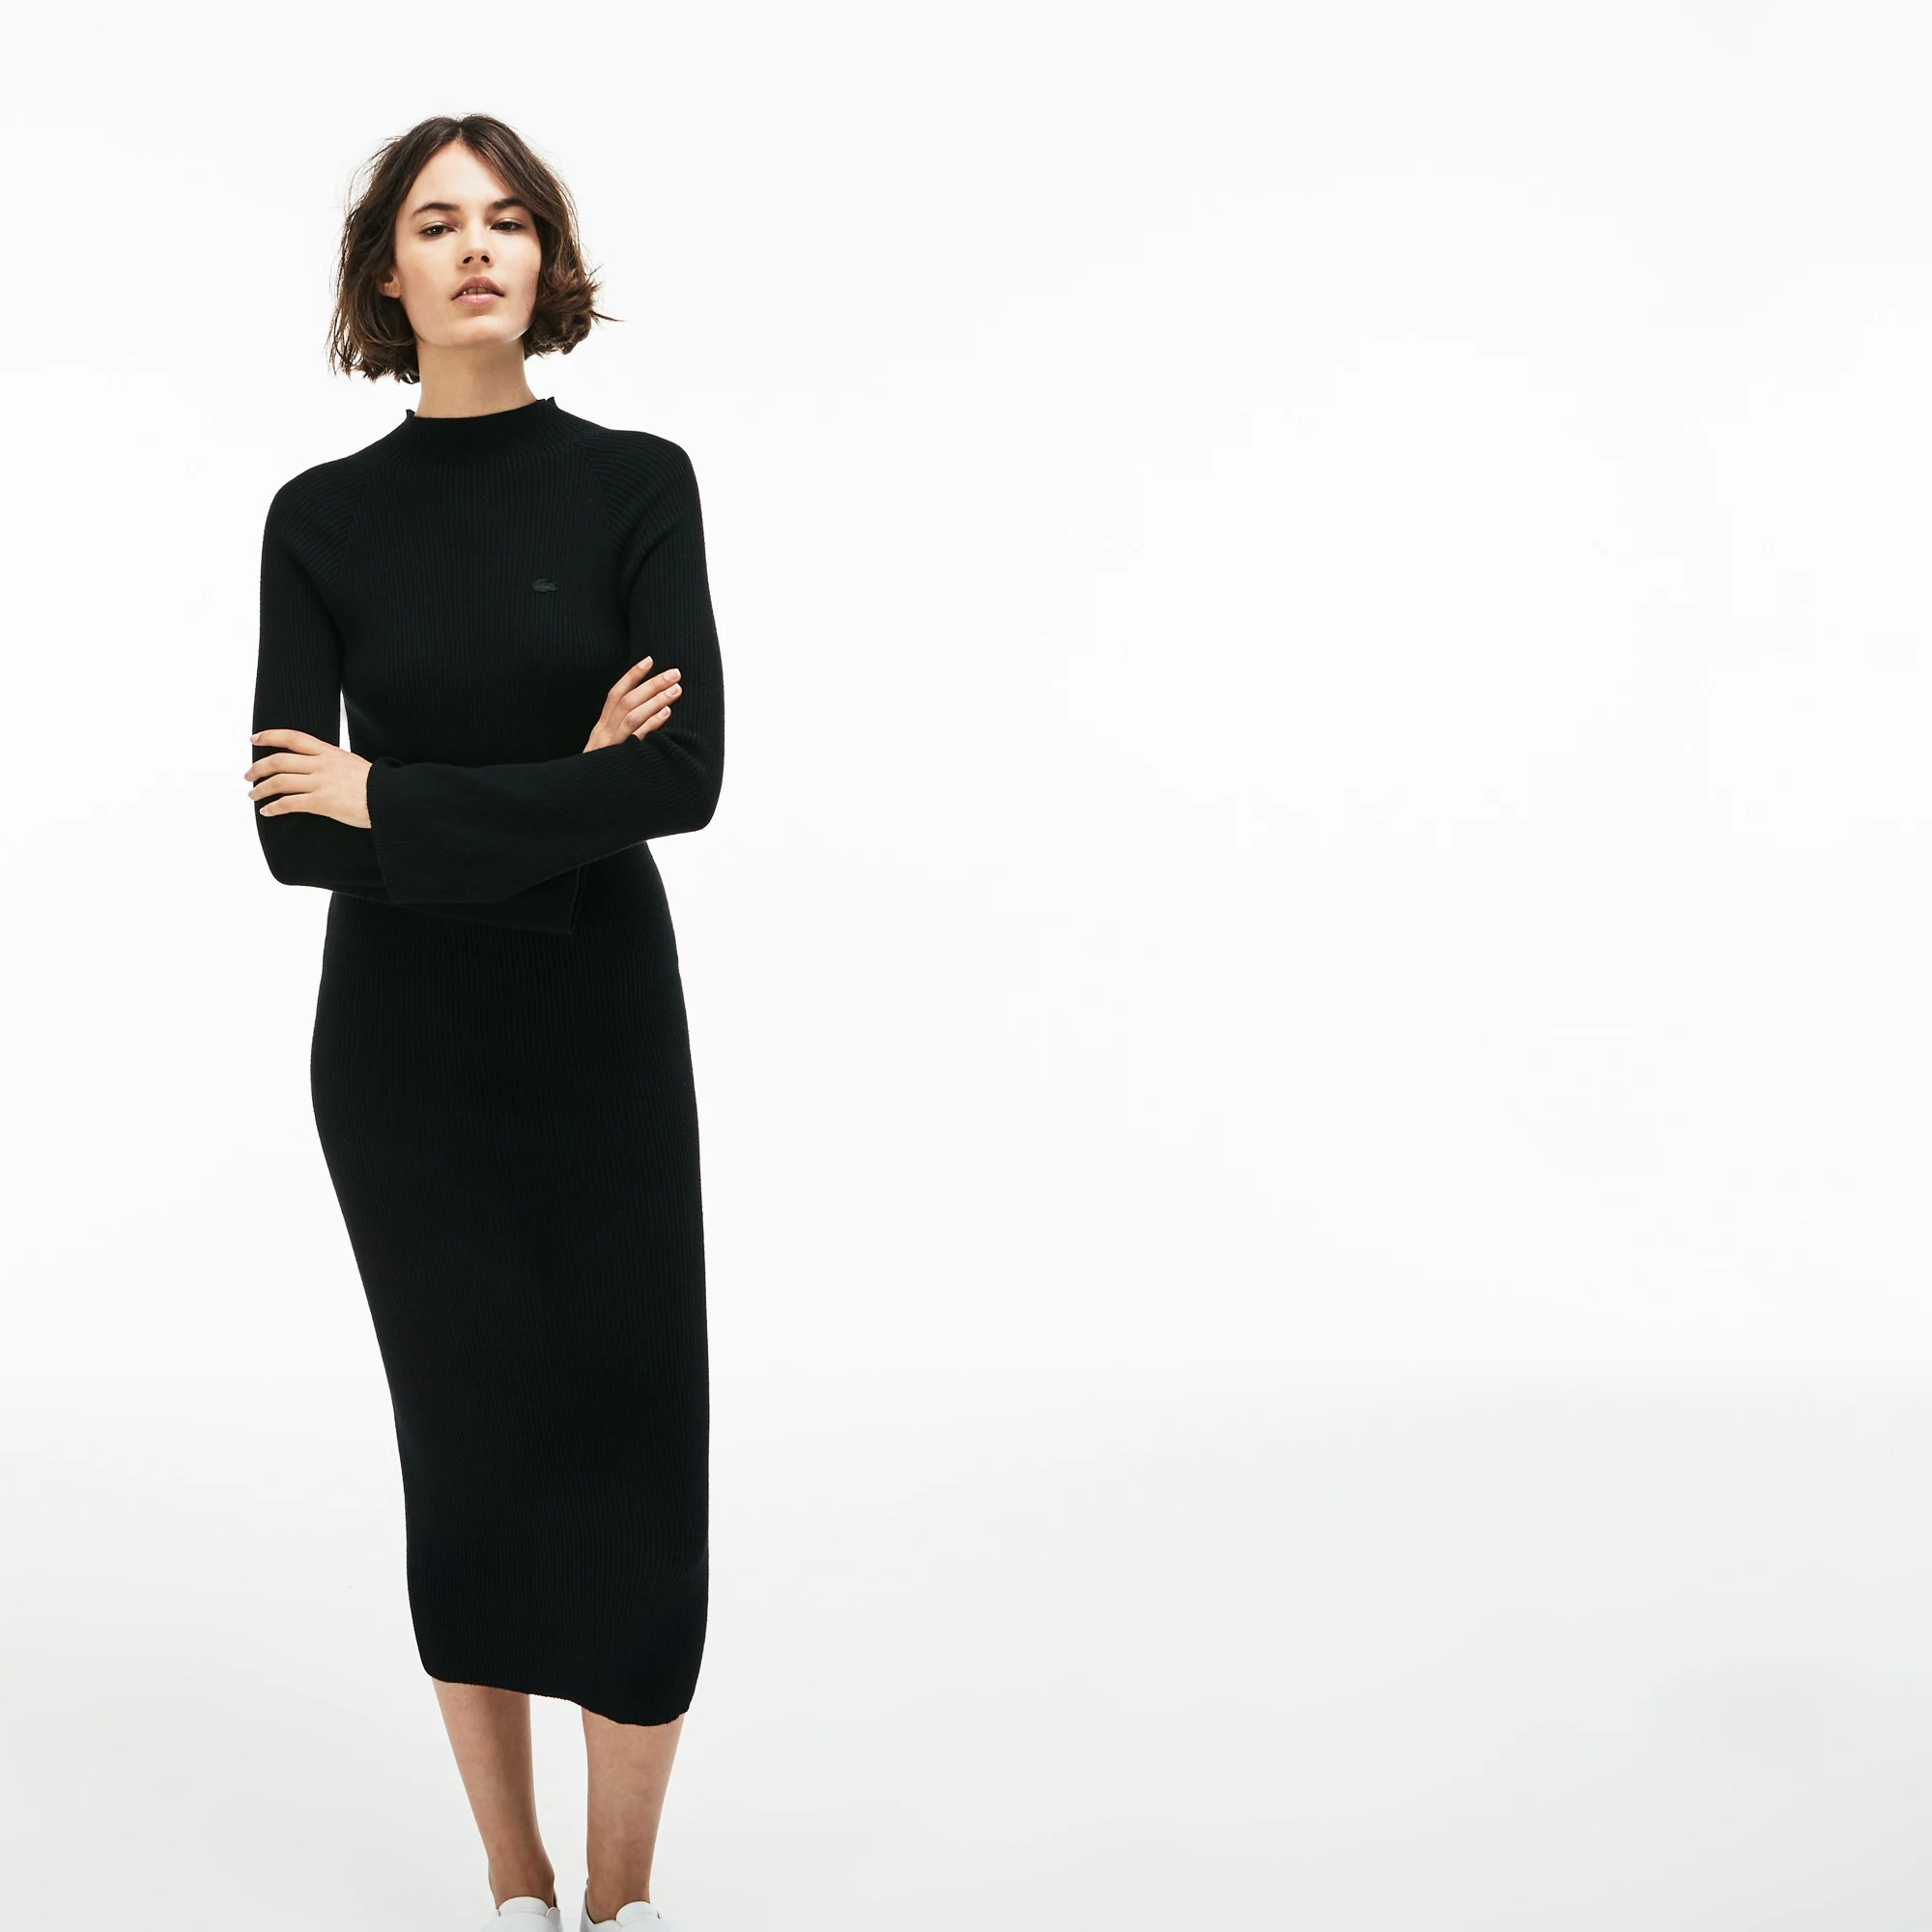 Dresses and Skirts   Women s Clothing   LACOSTE Women s LIVE Close Fitting Ribbed Cotton And Cashmere Dress